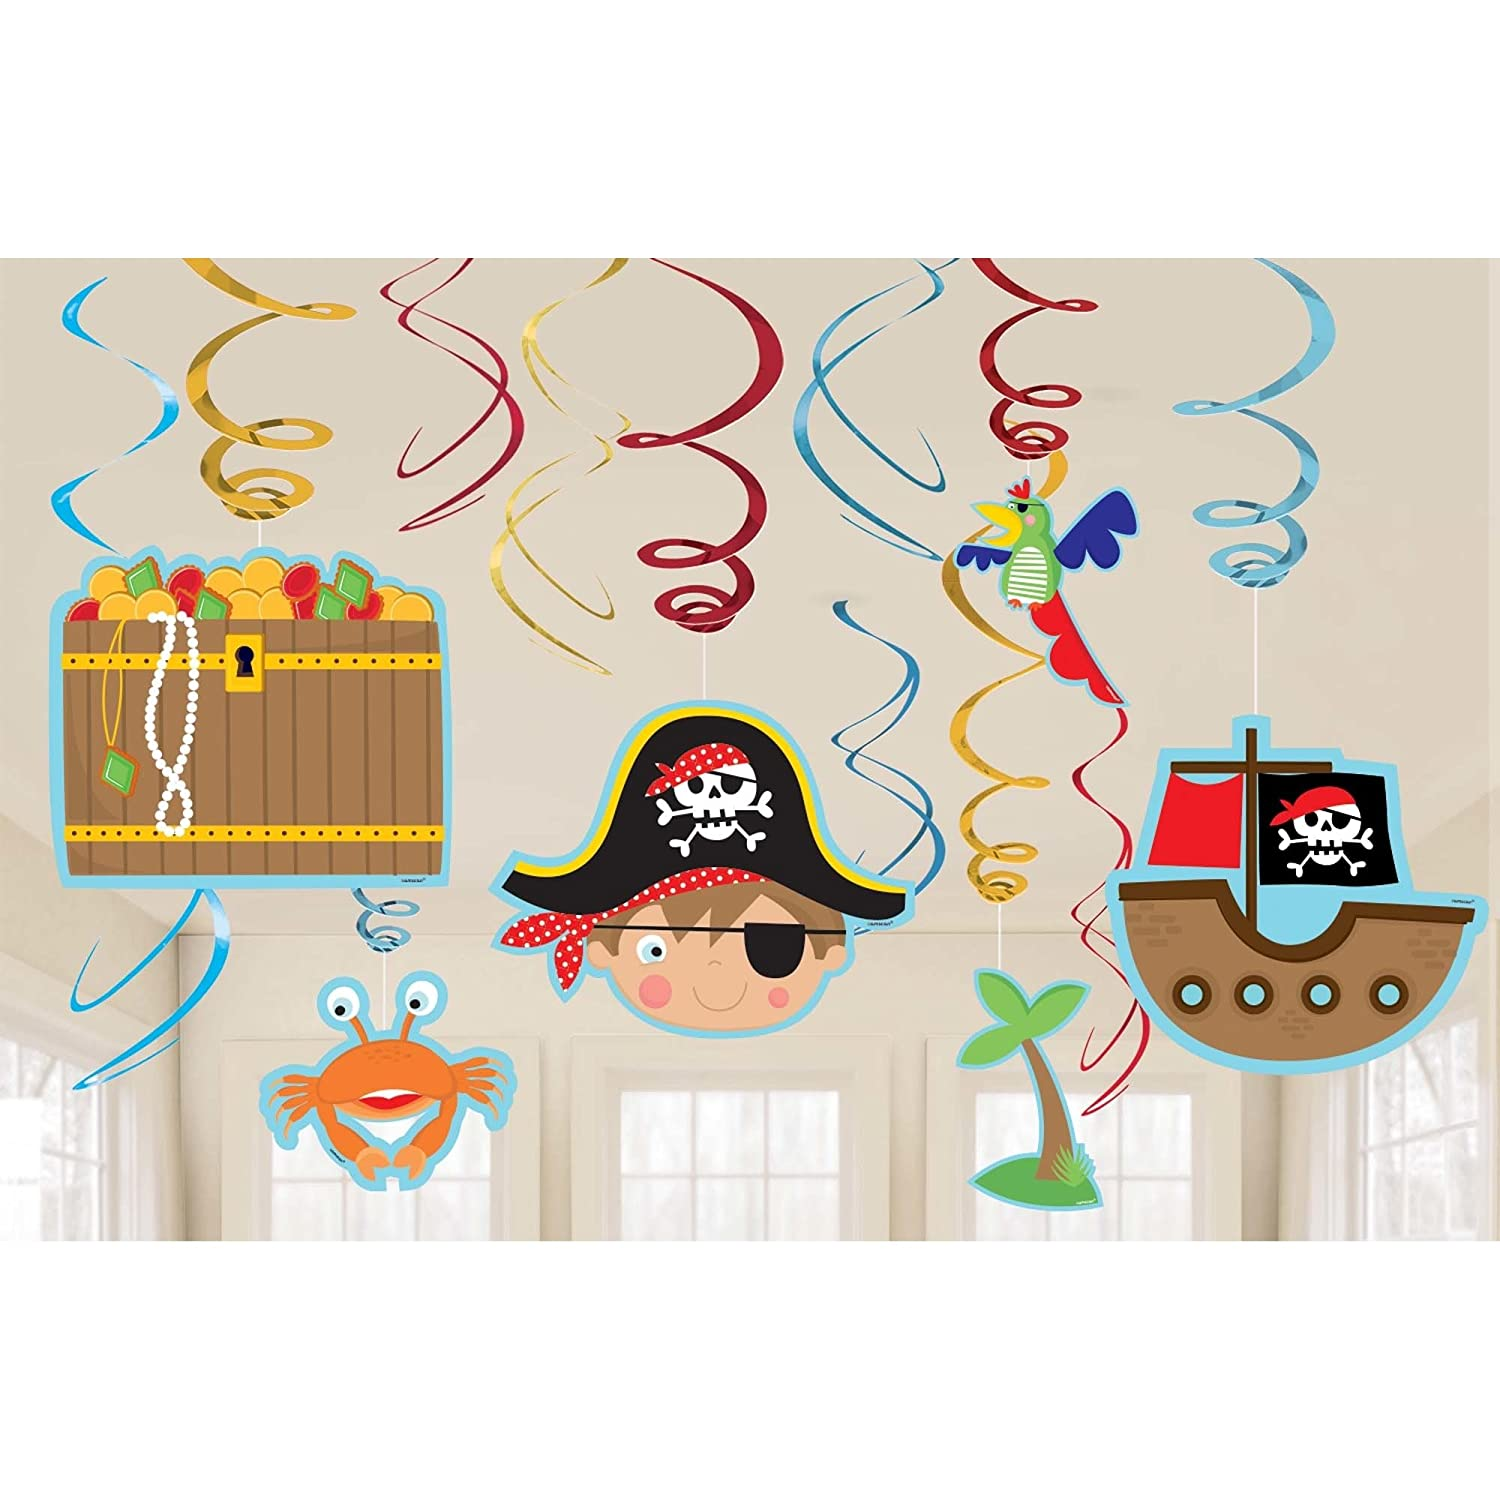 Pirate/'s Treasure Map Birthday Party Backdrop Scene Setters Wall Decorating Kit